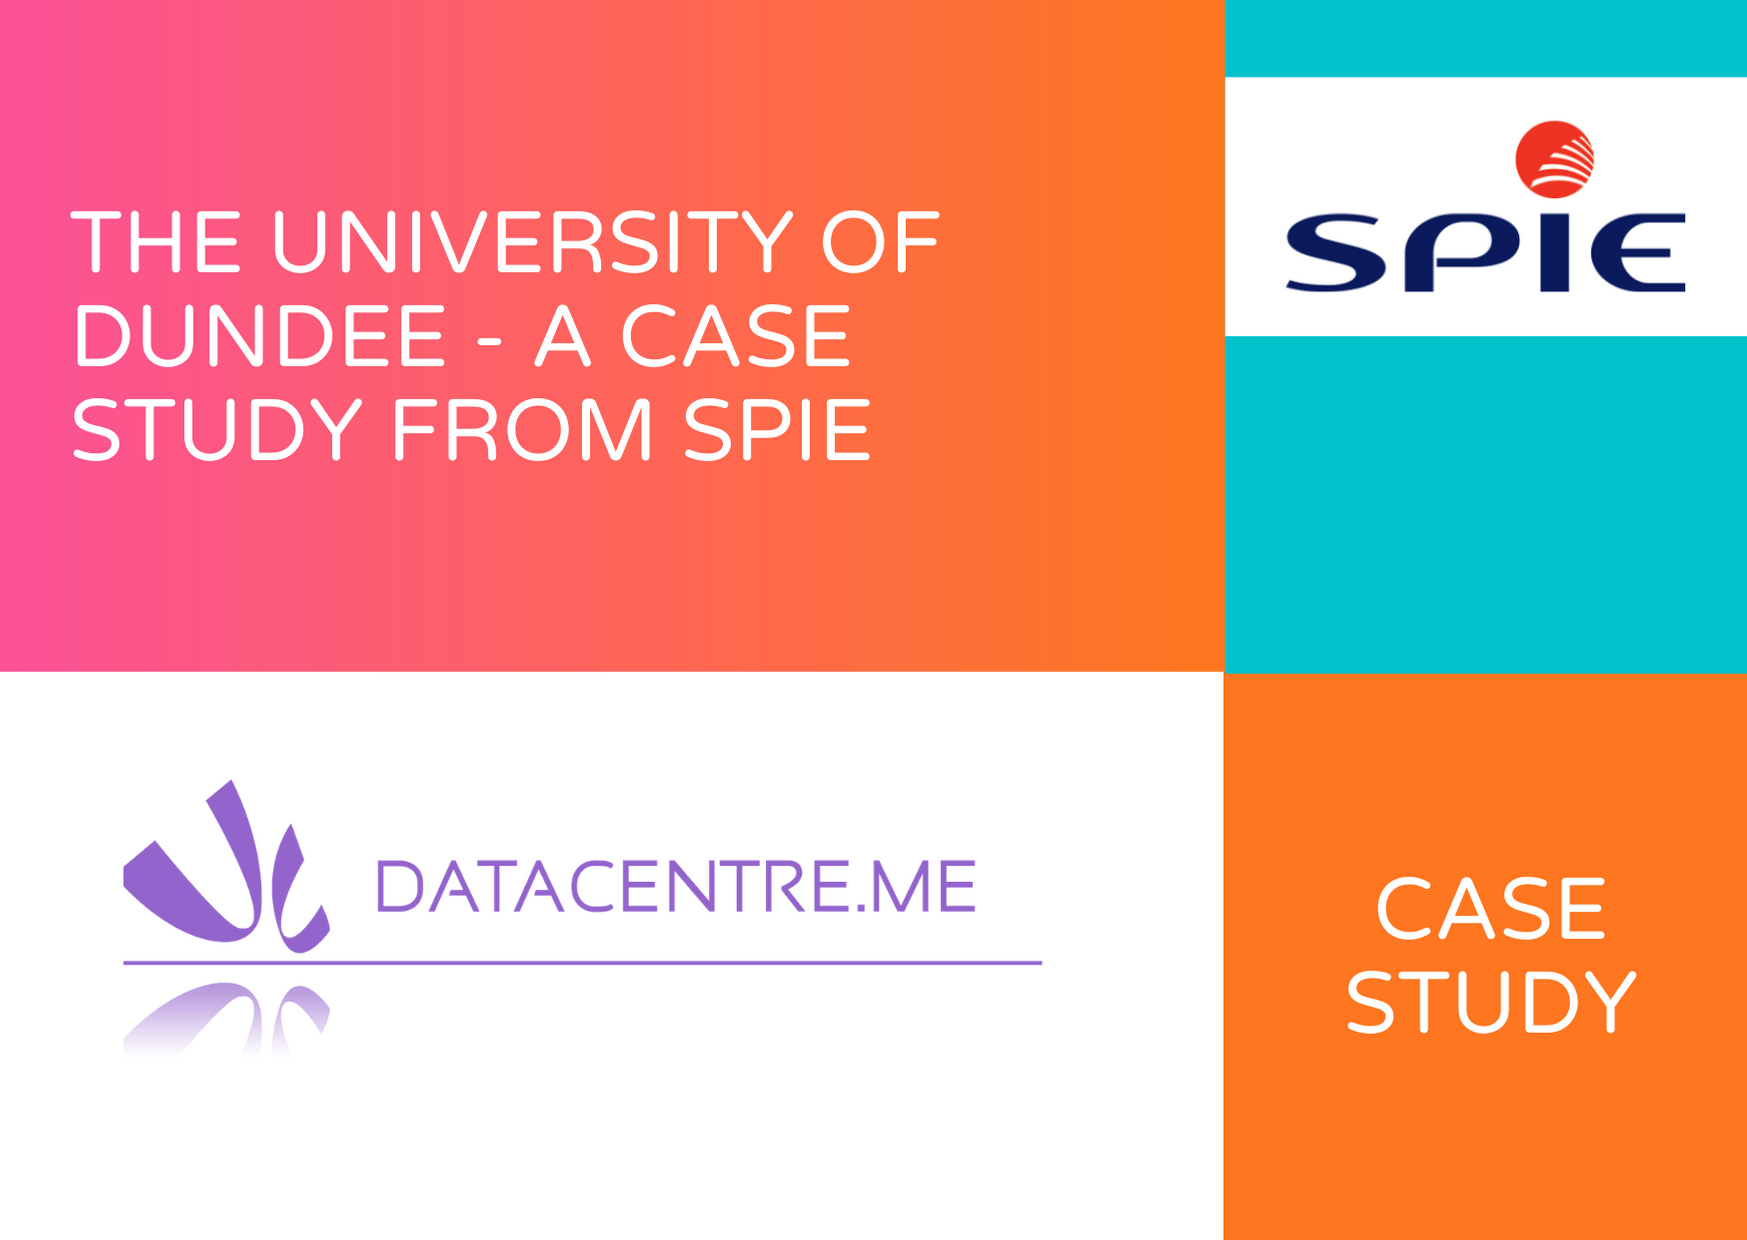 The University of Dundee - A Case Study From SPIE